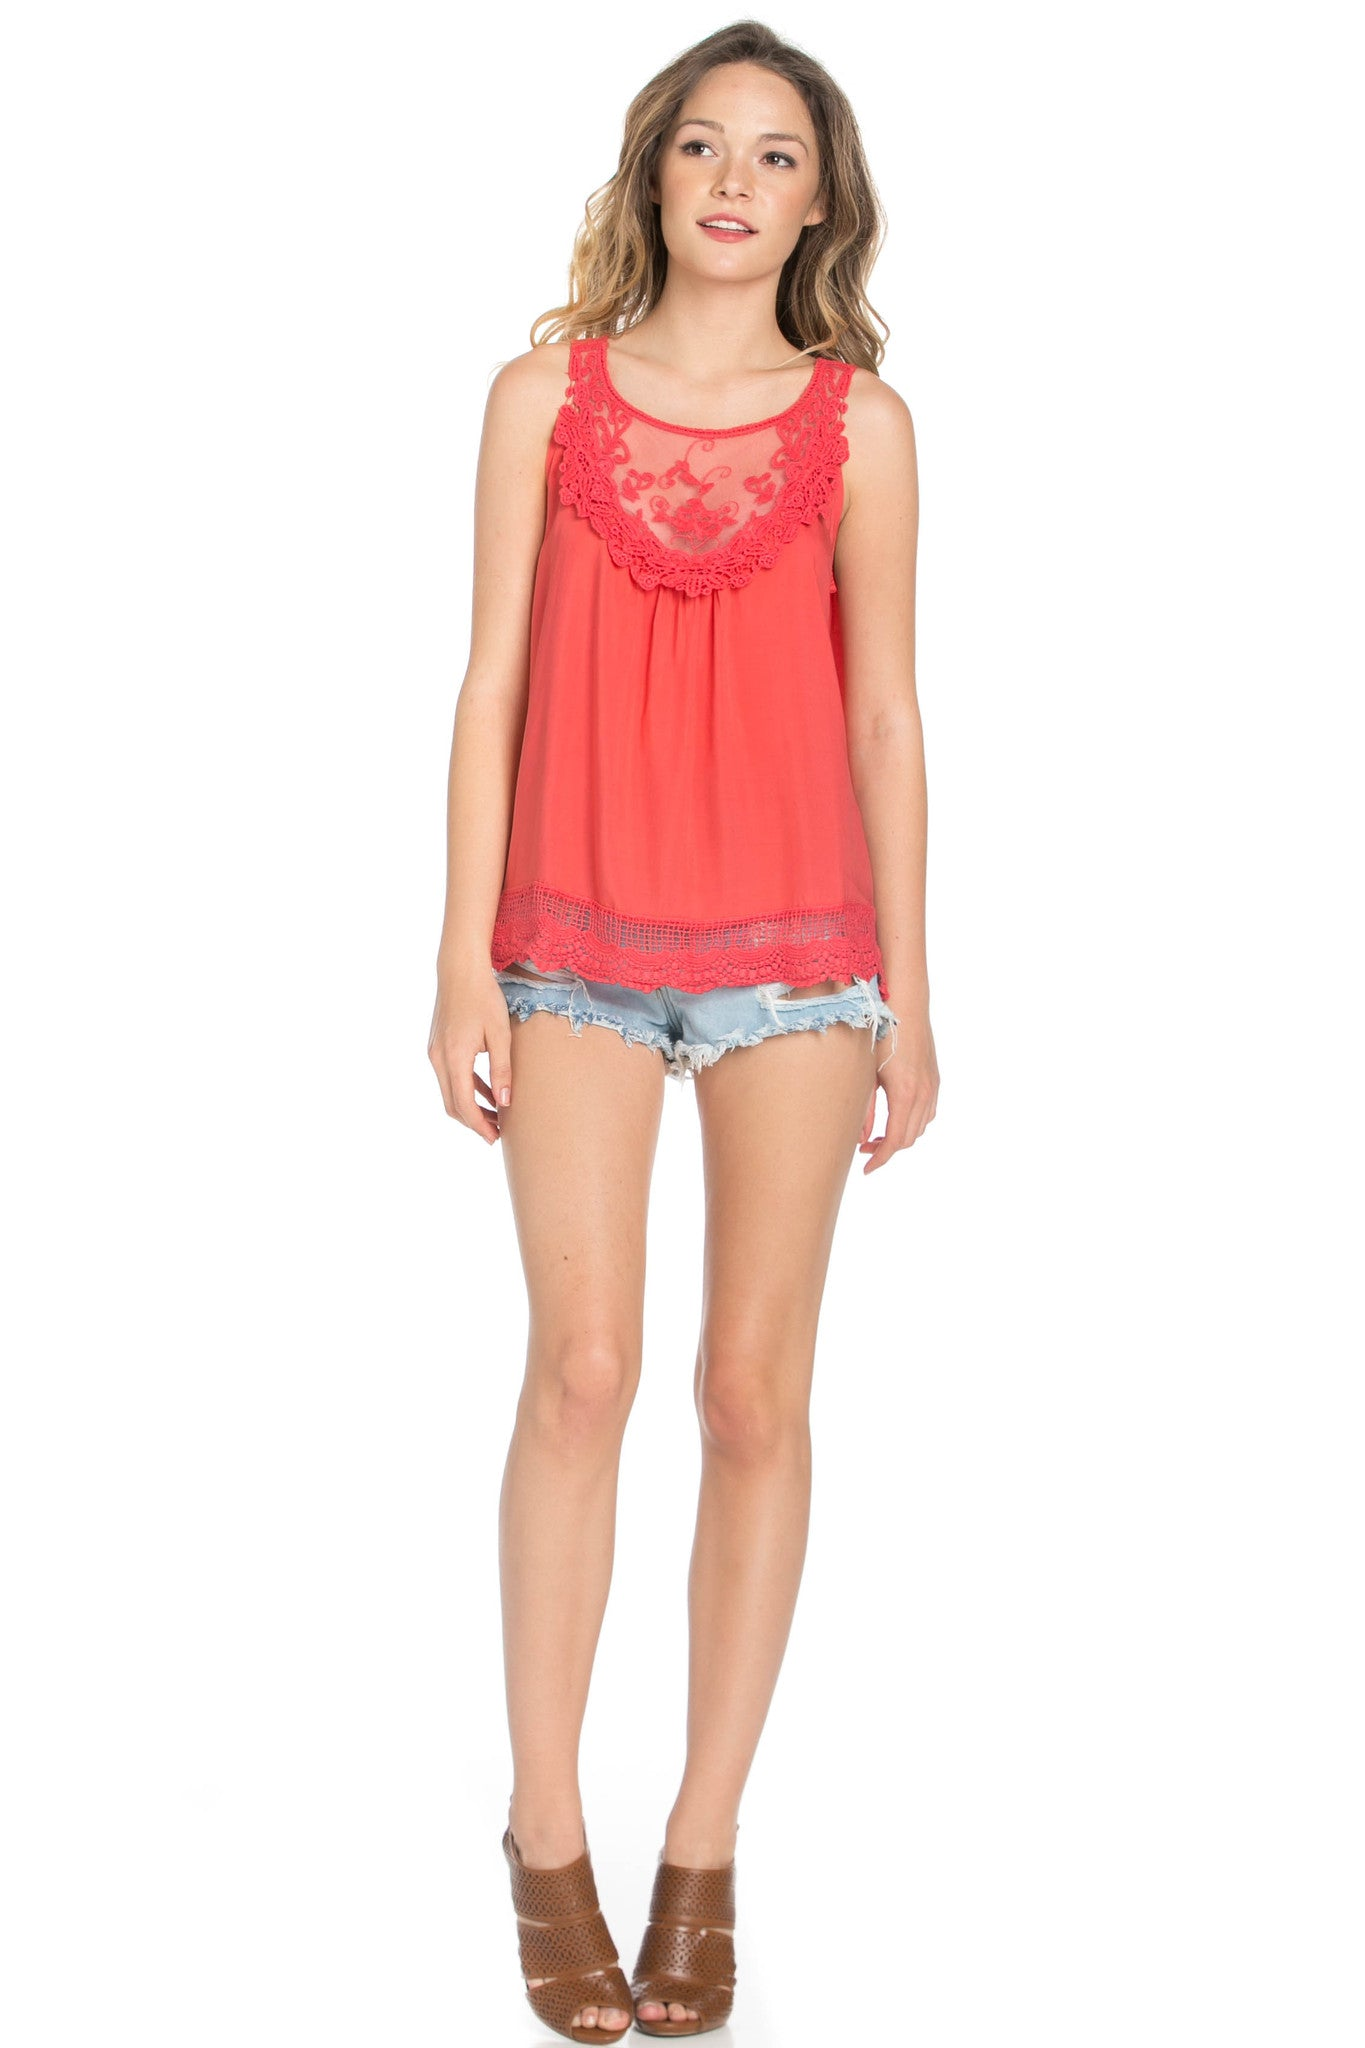 Crochets and Lace Coral Top - Tops - My Yuccie - 6